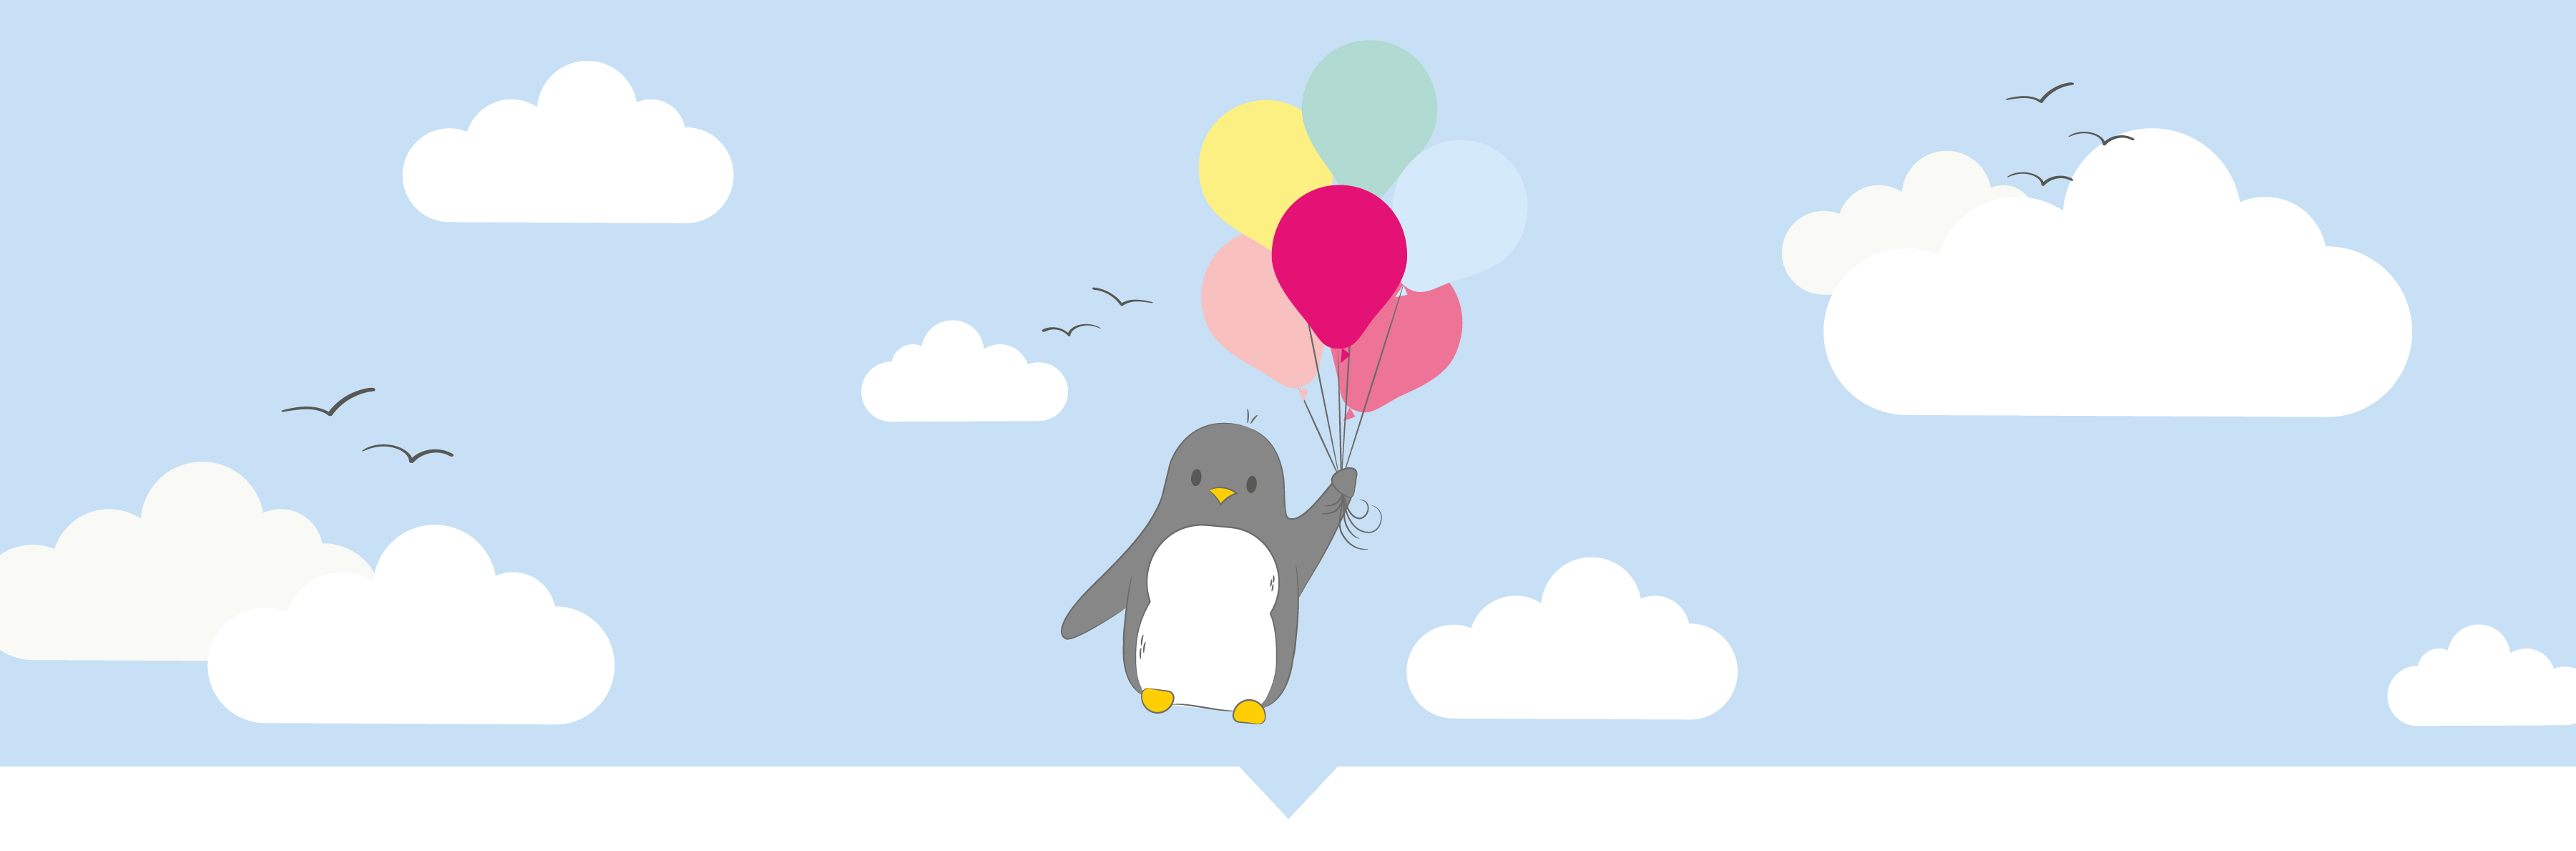 Penguin Floating away with a bunch of colourful balloons on a cloudy blue background- Sian Shrimpton Design & Illustration